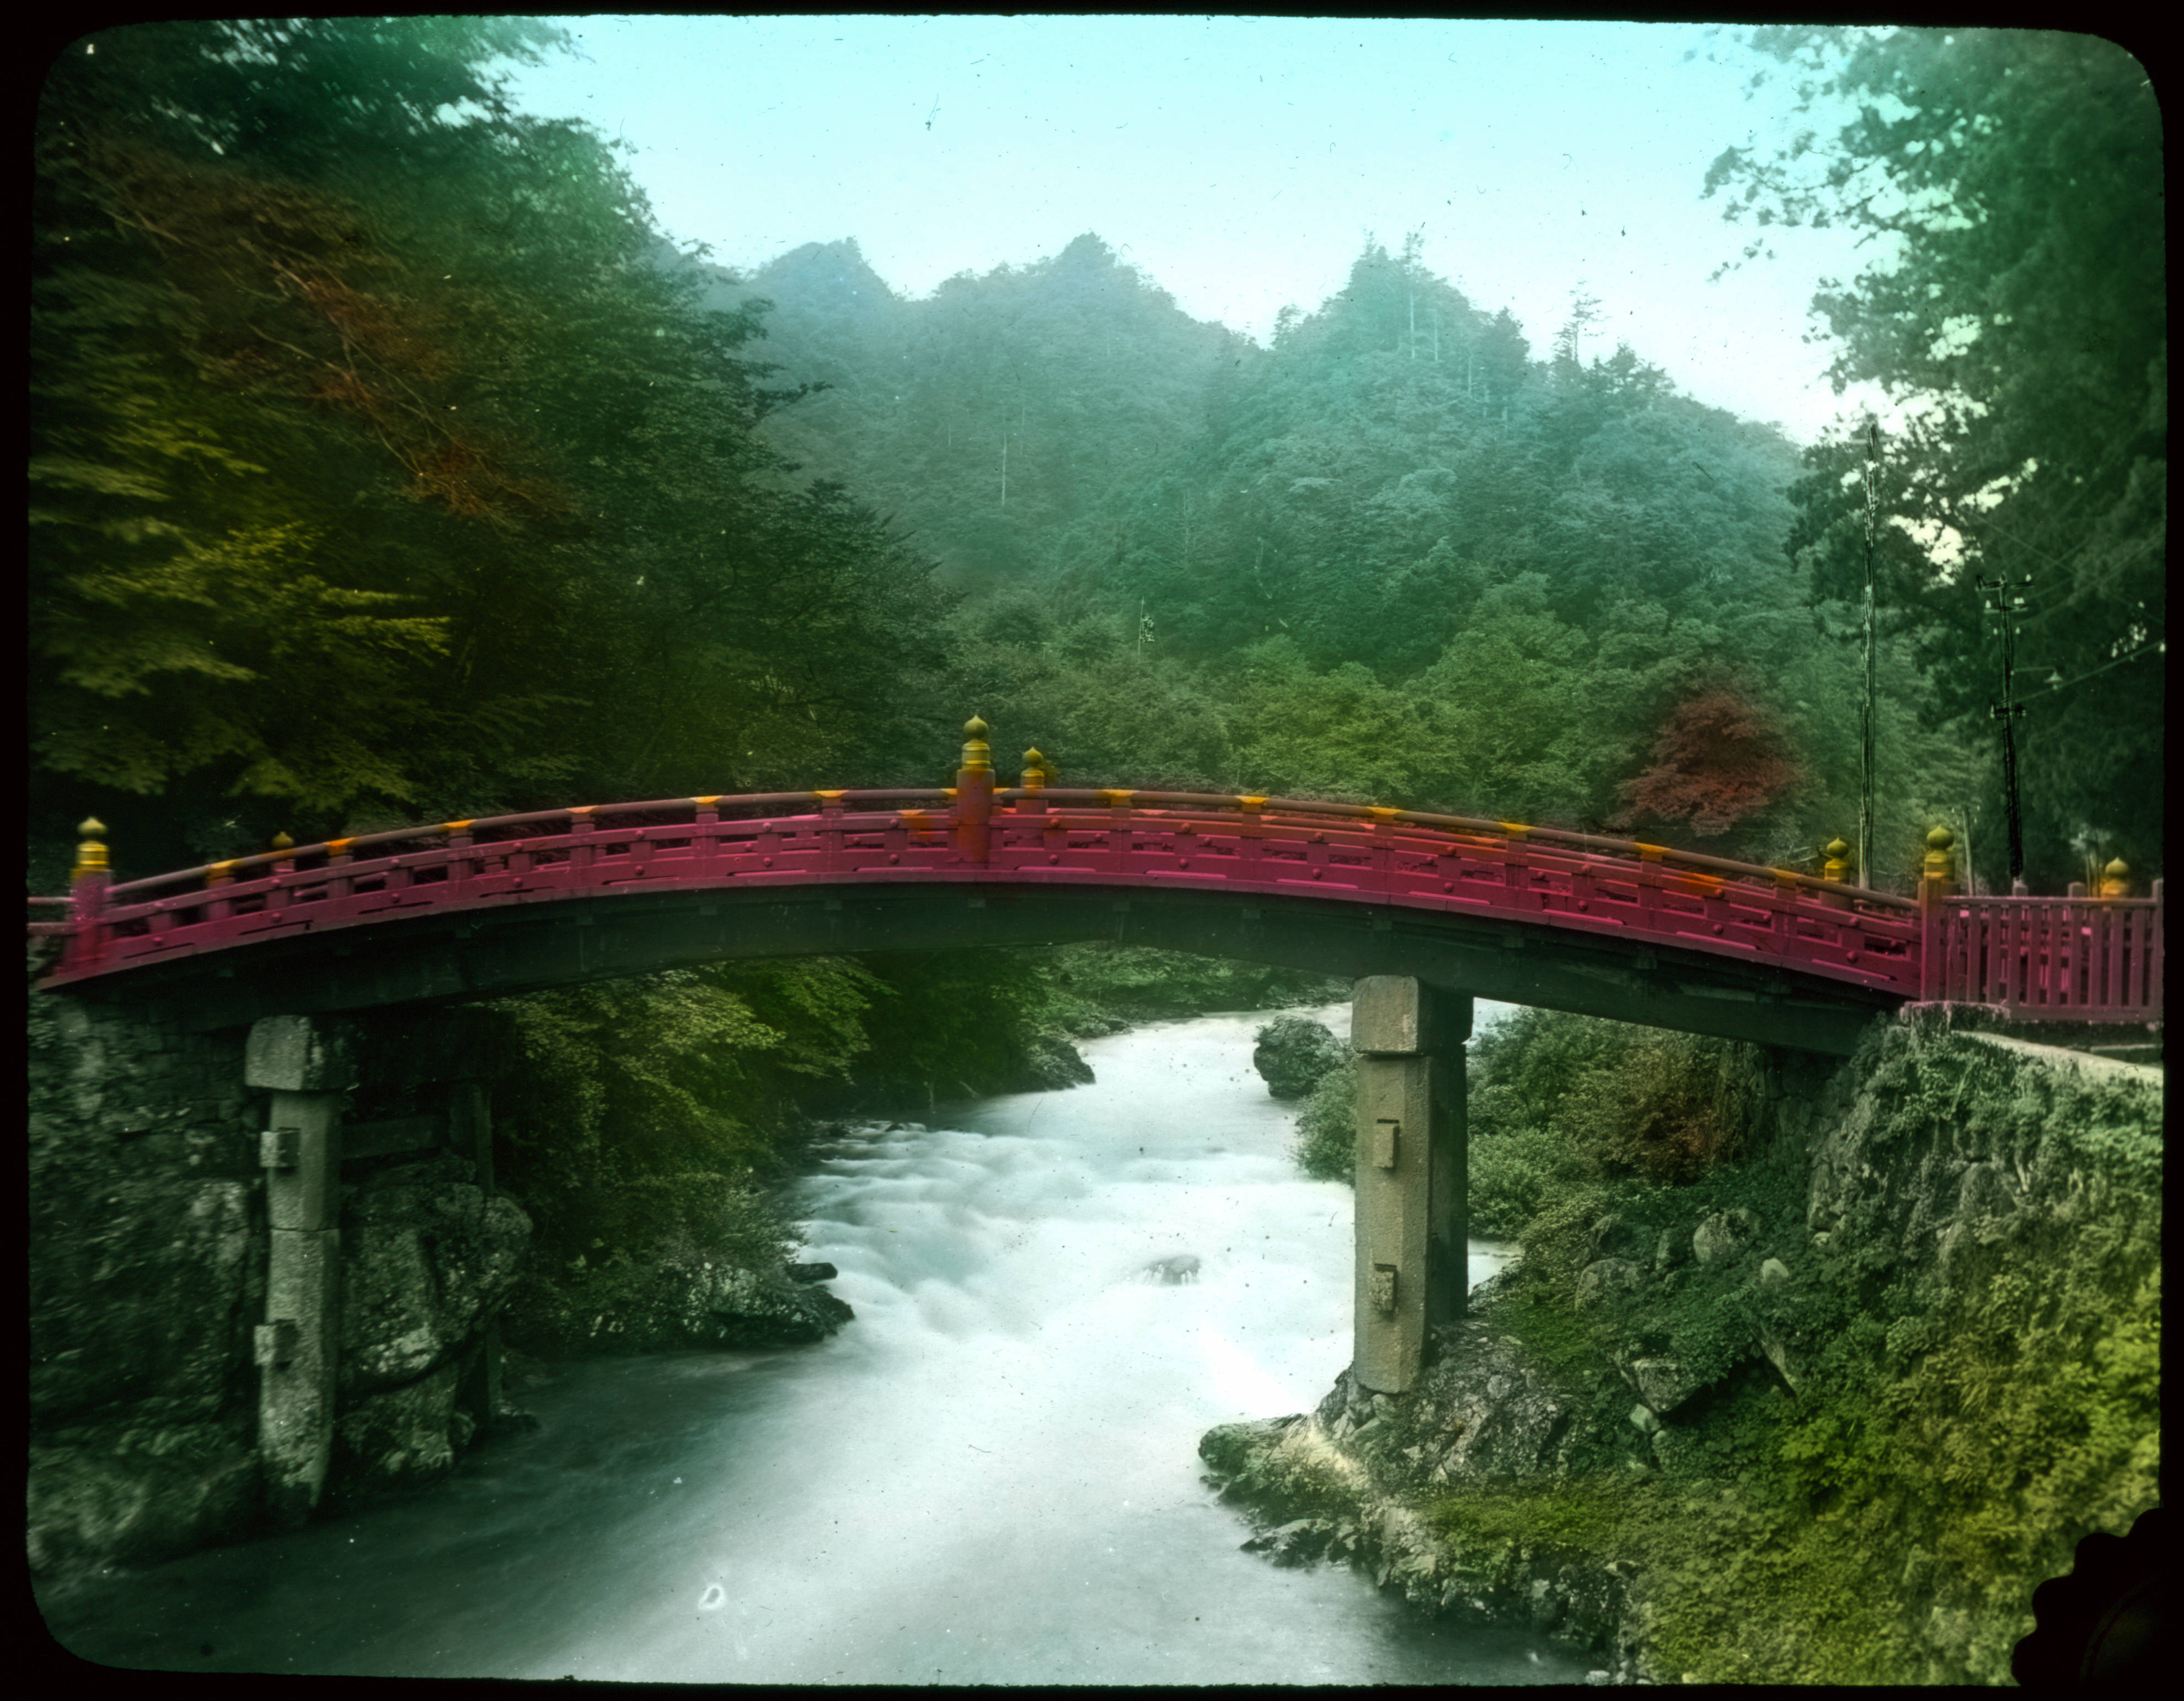 File:Curved red wooden bridge over river; forest in ...